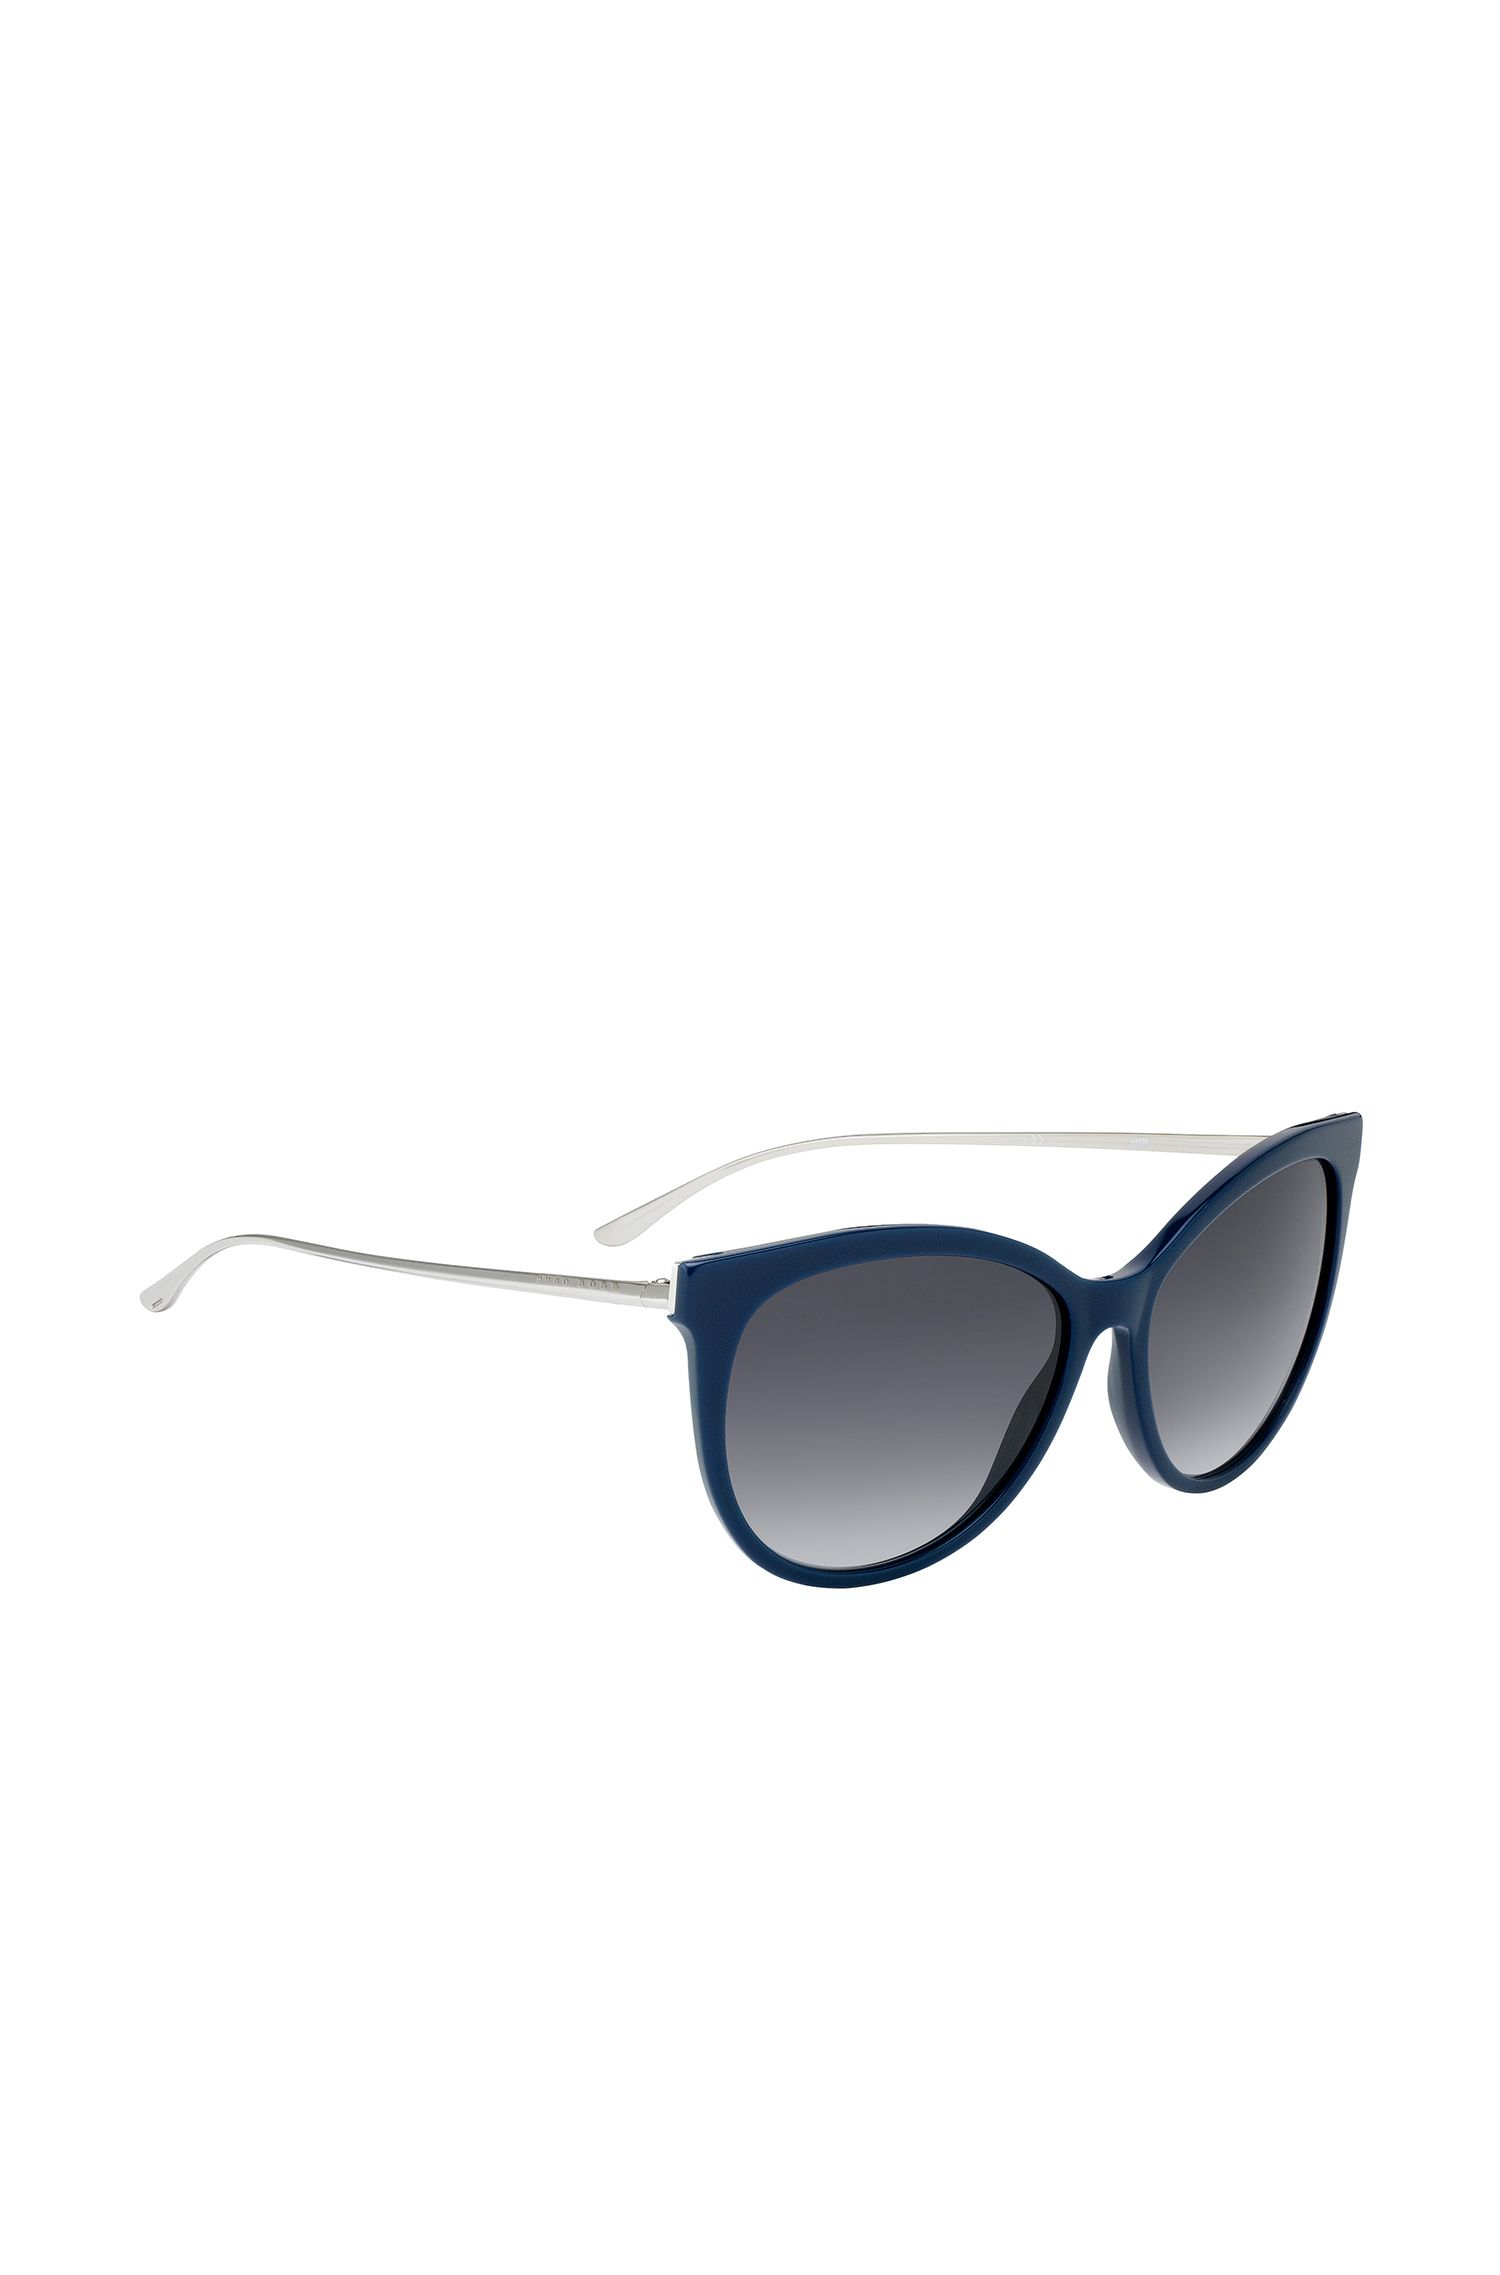 Cateye sunglasses with metal arms